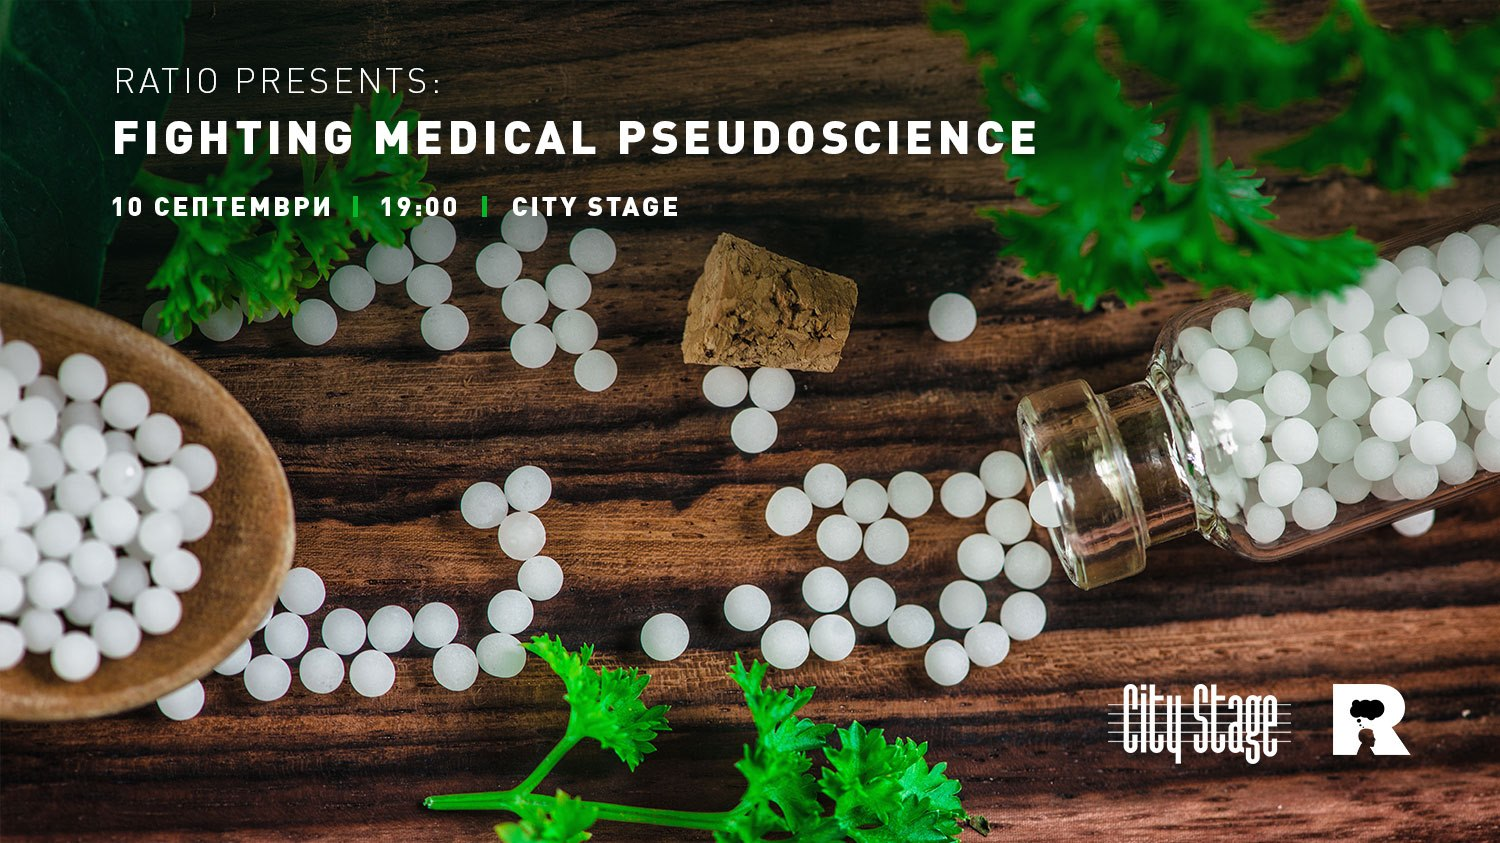 Ratio presents: Fighting Medical Pseudoscience